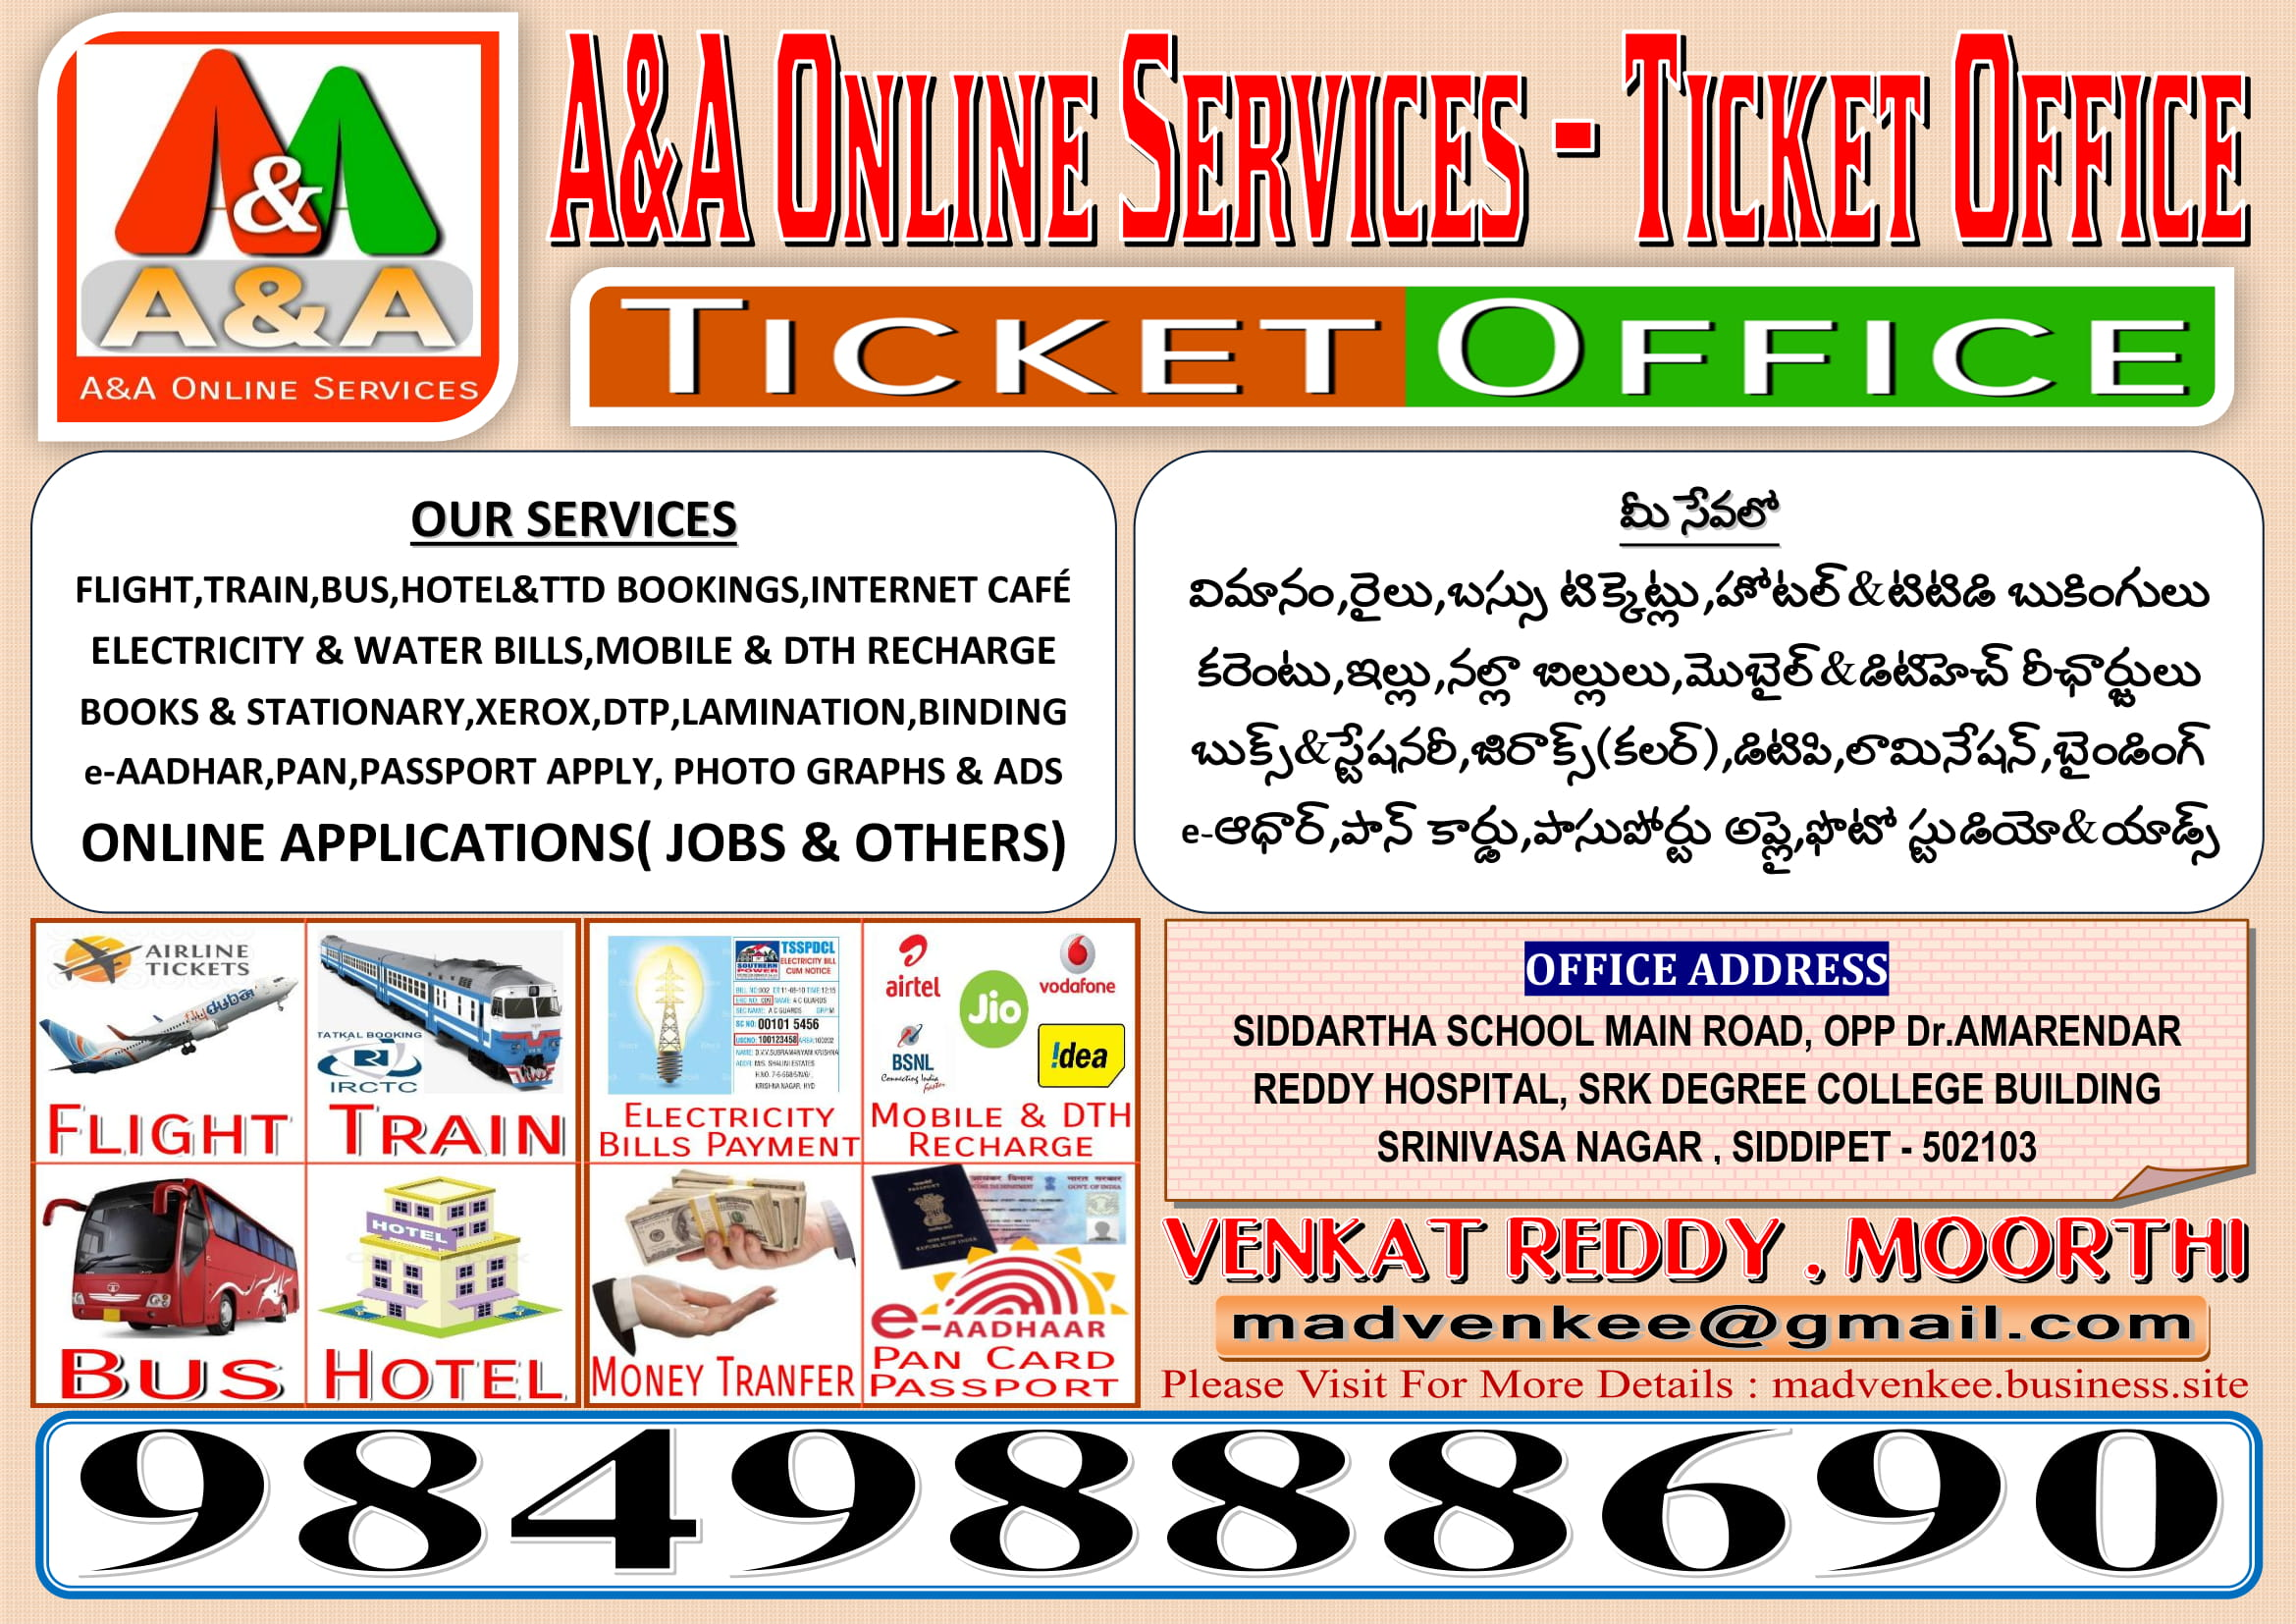 A&A ONLINE SERVICES - TICKET OFFICE in Mohinpura, Siddipet-502103